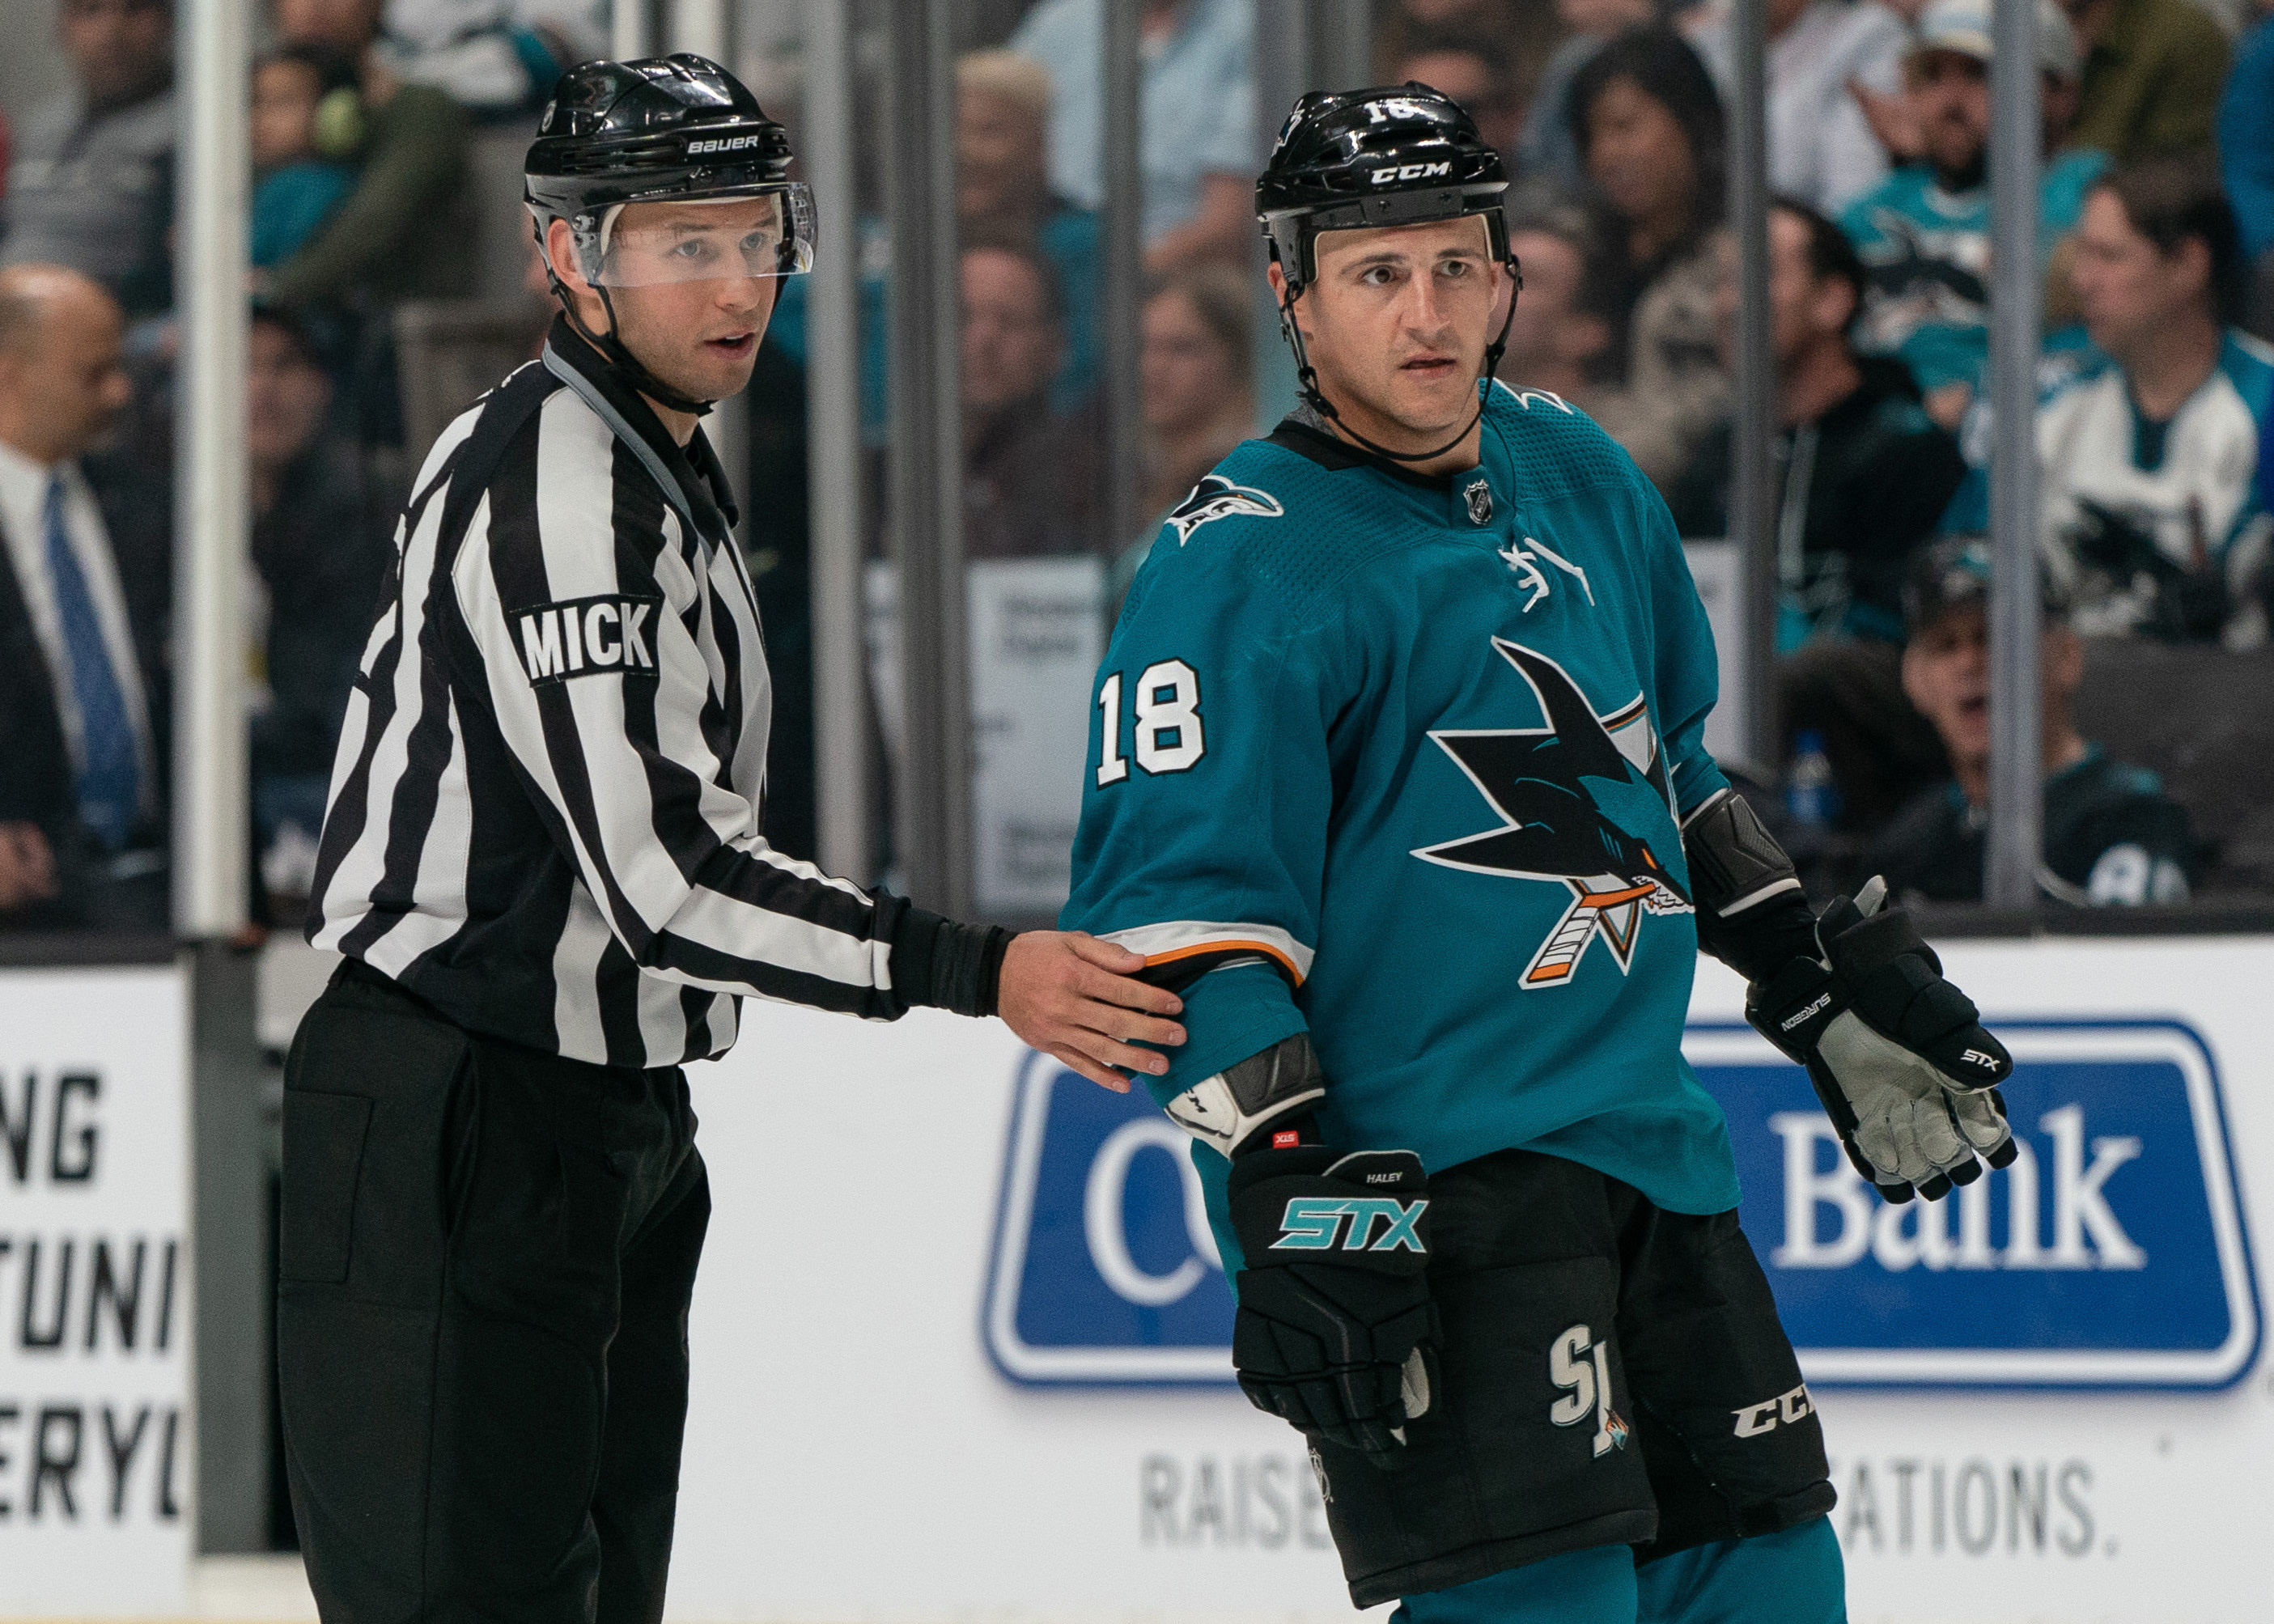 Mar 31, 2019; San Jose, CA, USA; San Jose Sharks center Micheal Haley (18) is escorted off the ice by the linesman Bryan Pancich (94) during the third period for fighting at SAP Center at San Jose.